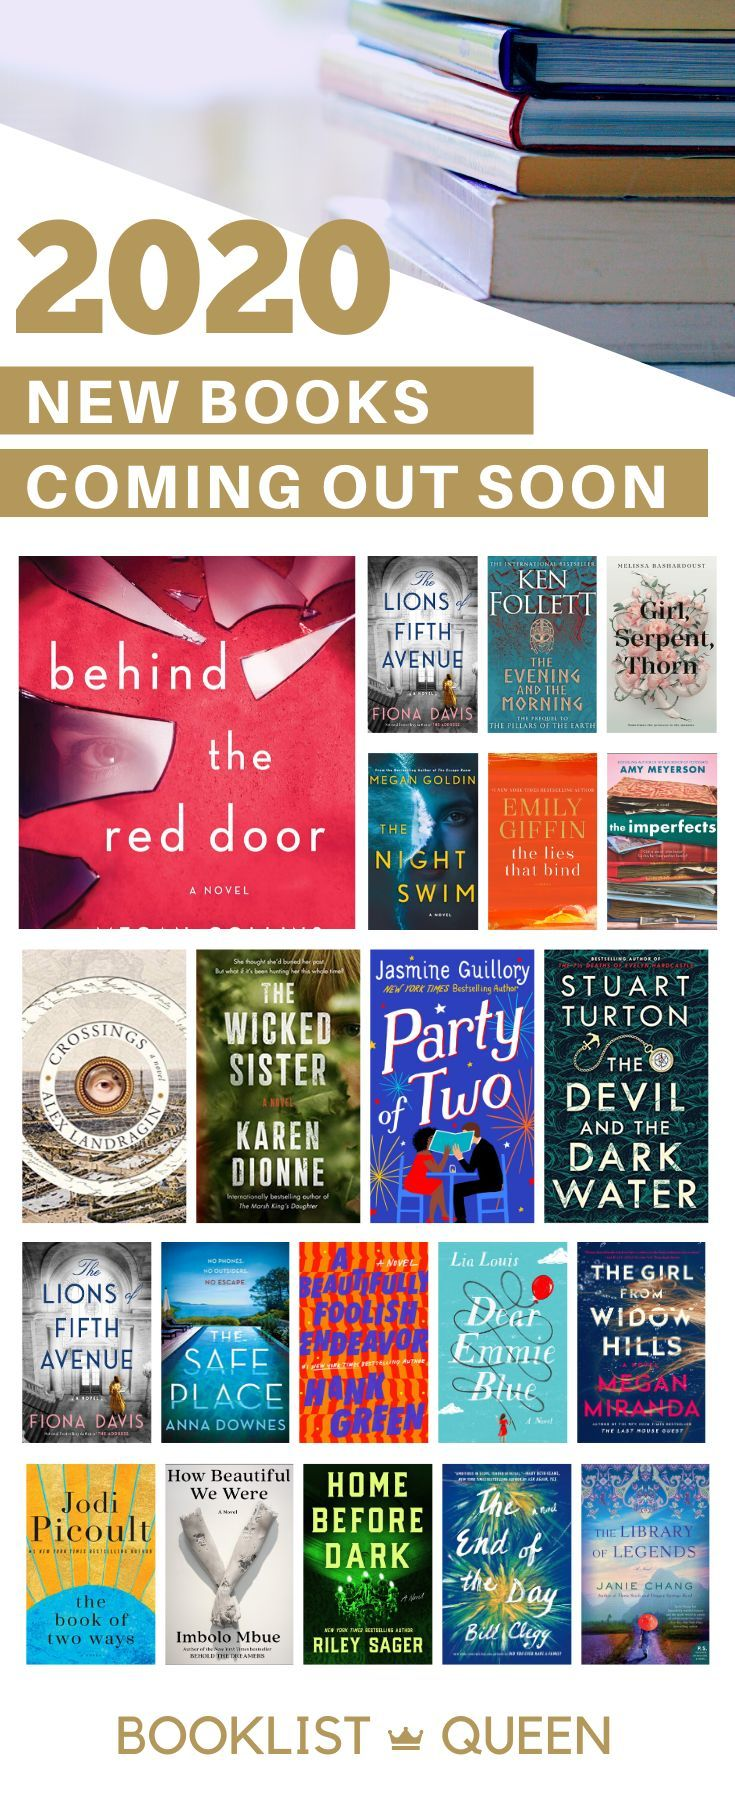 Pin On Book Lists In 2020 Best Book Club Books Book Release Upcoming Books